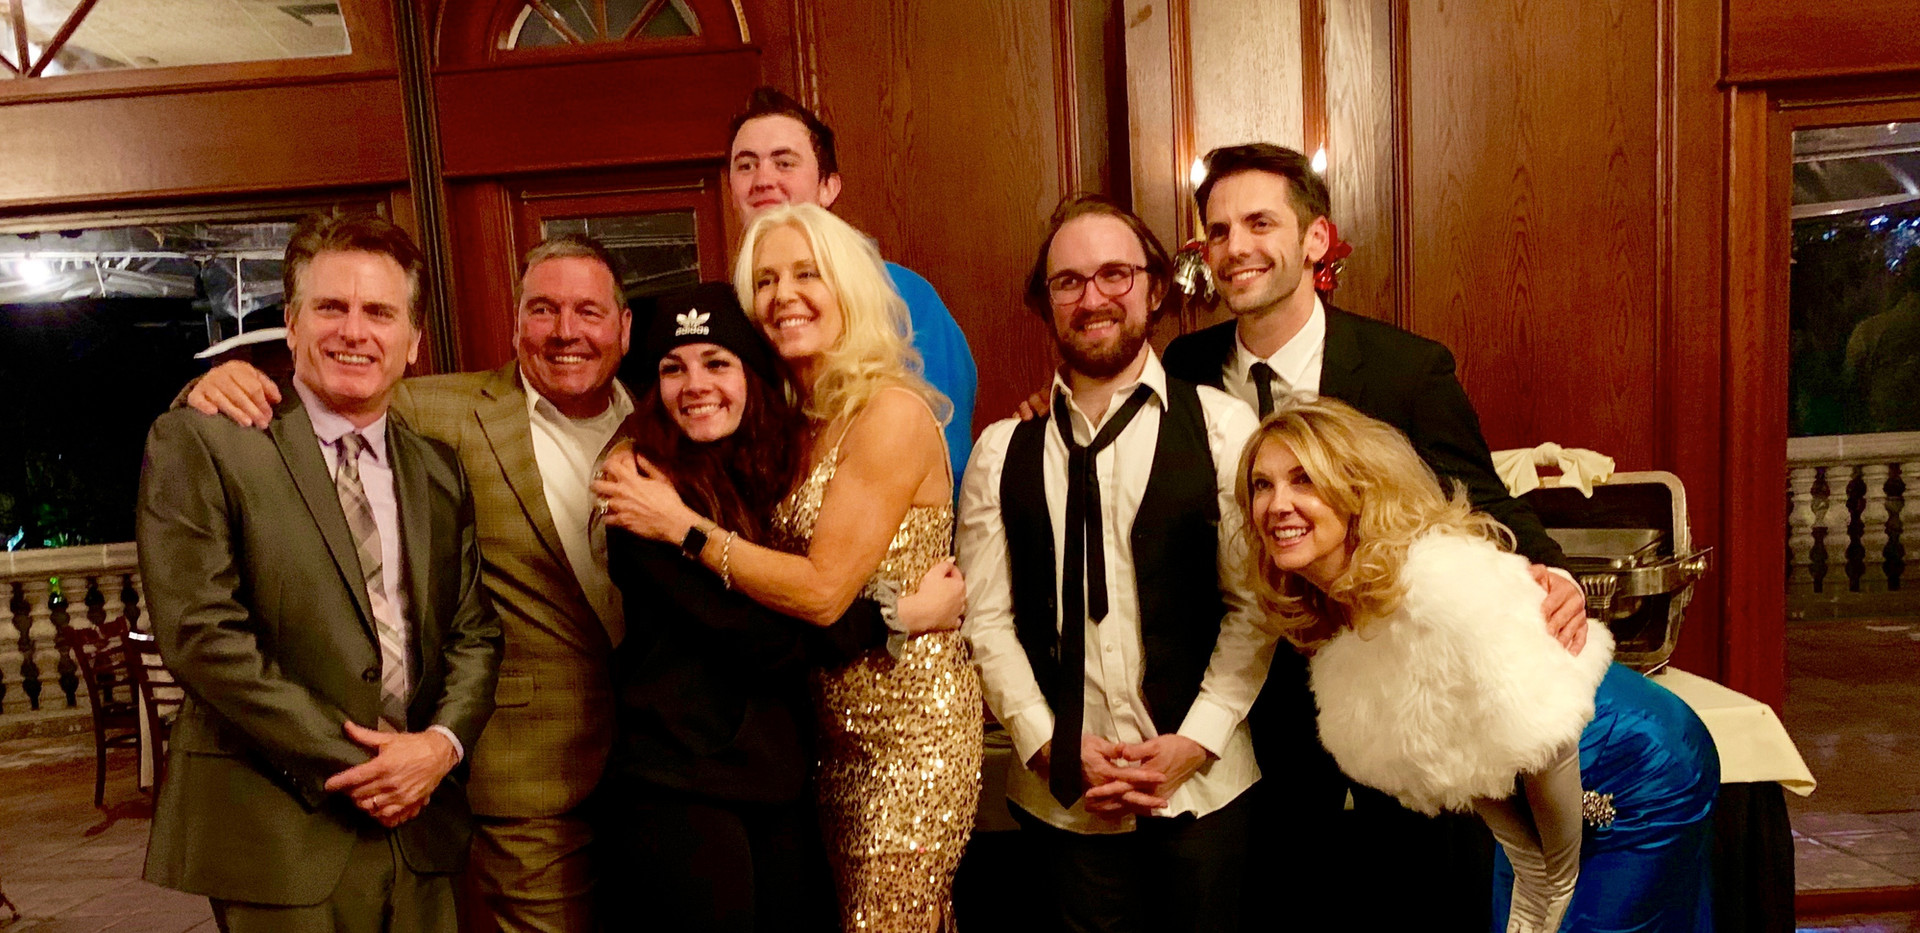 Maggiano's NewYears Eve 2019 guests with